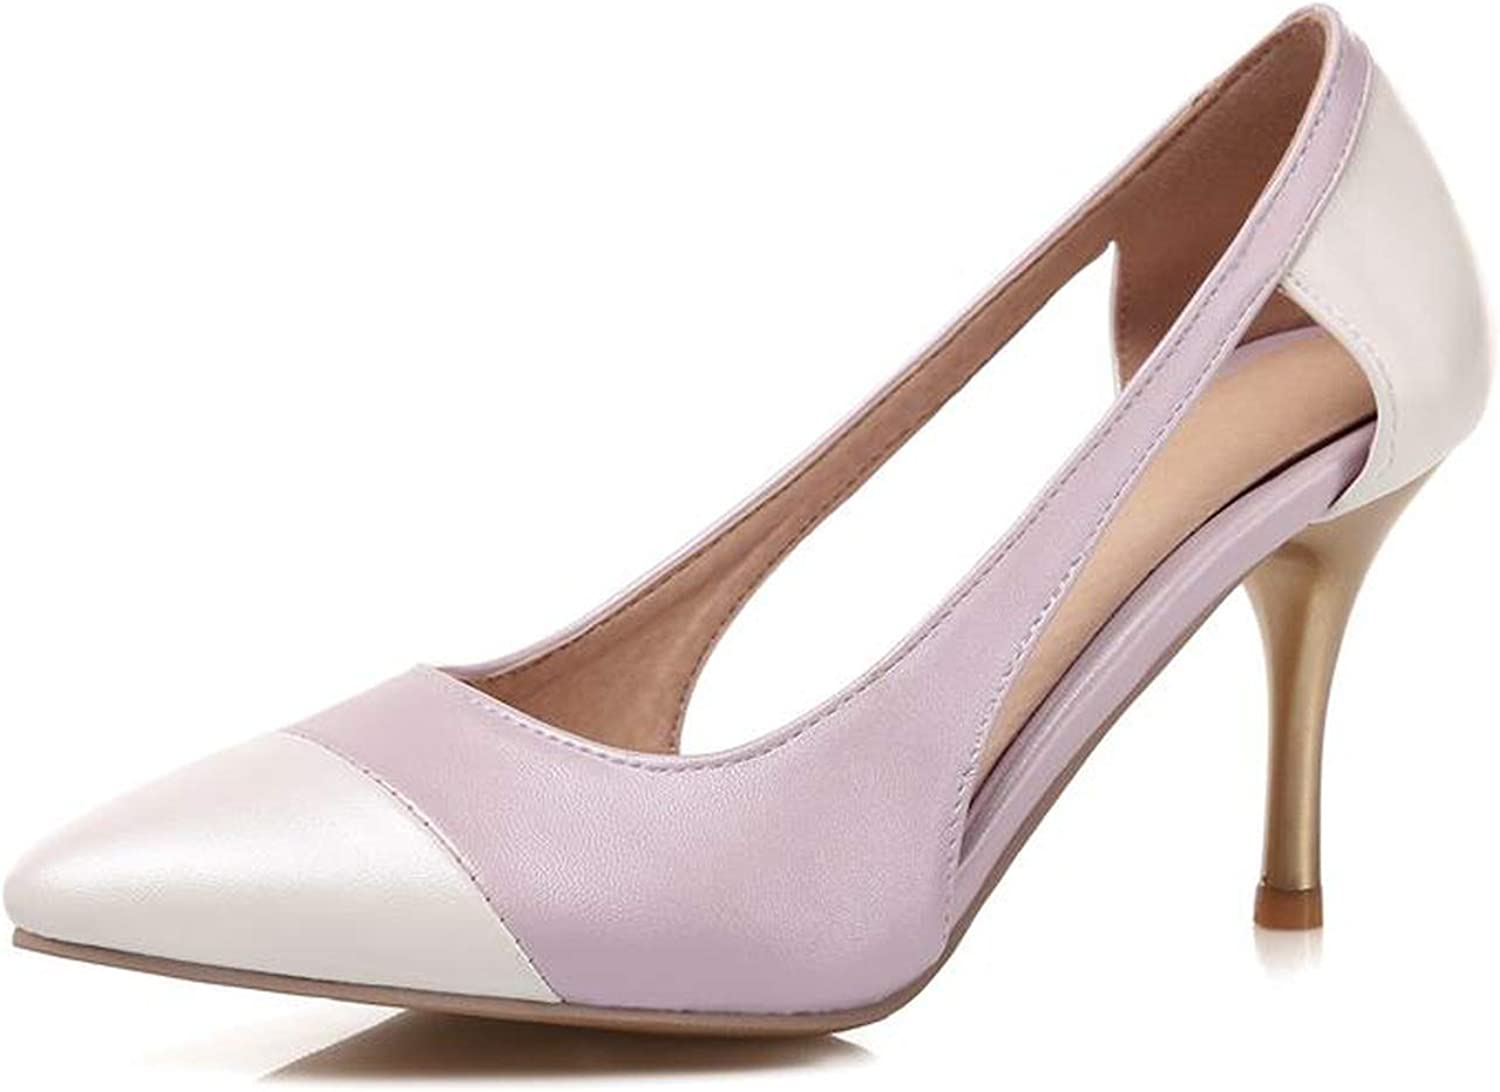 New Summer womenmps Pointed Toe Leather Stiletto high Heels Wedding shoes Woman,Purple,14